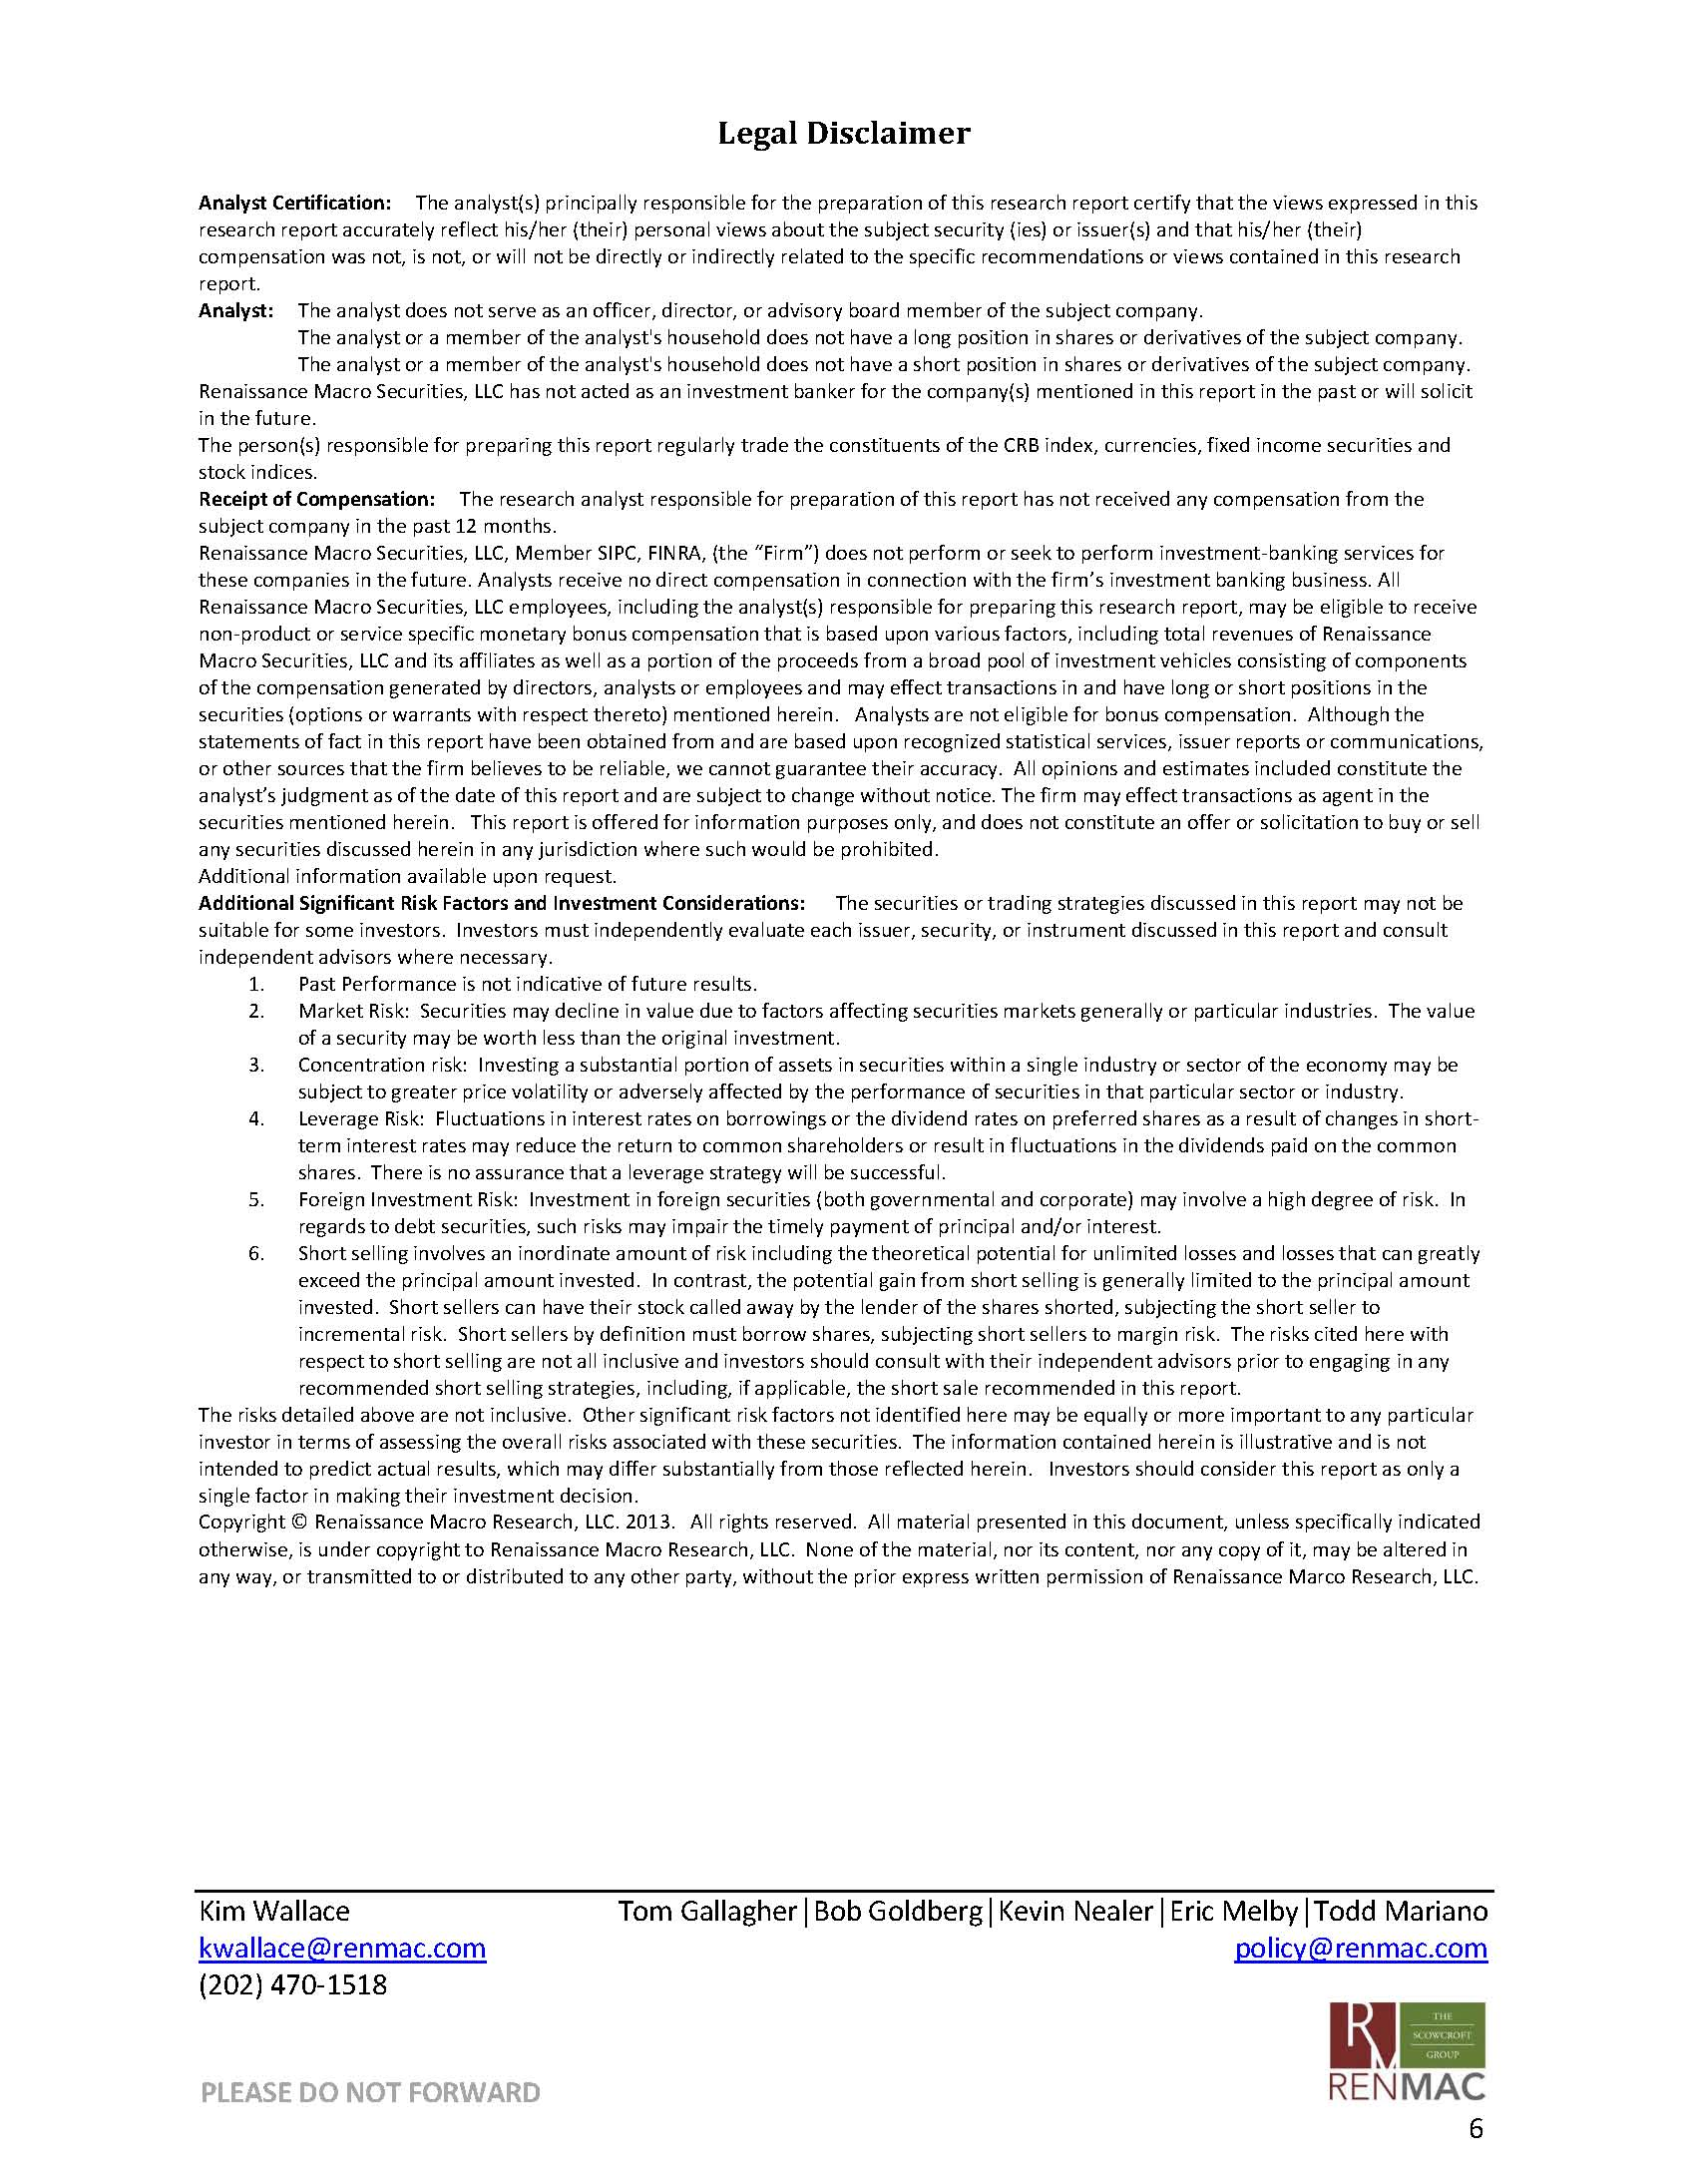 WallaceDaily07012013_Page_6